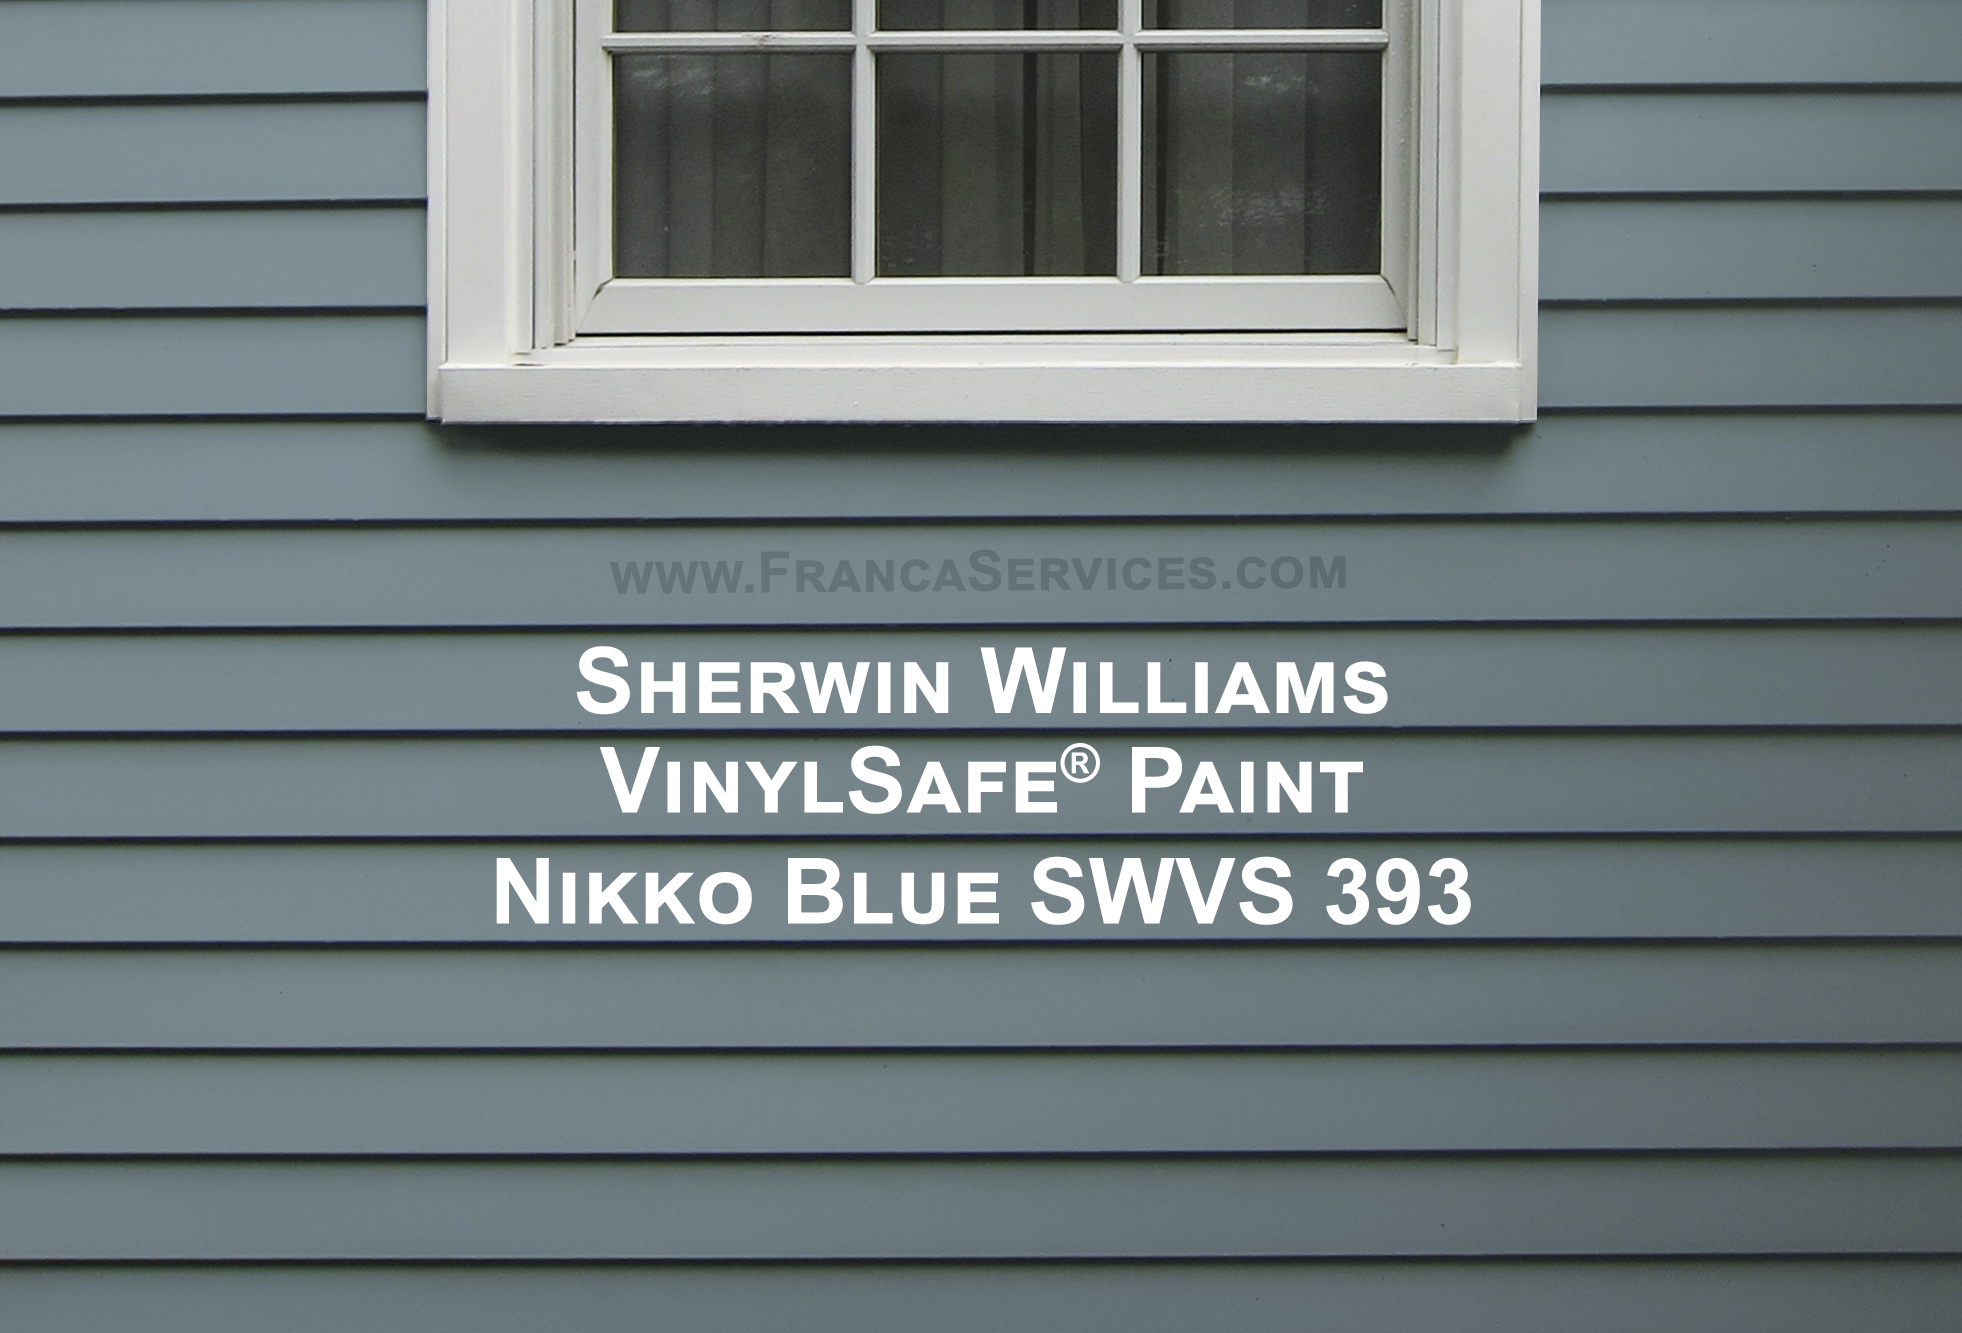 Sherwin Williams Paint for Vinyl Siding Installation in Marlborough MA